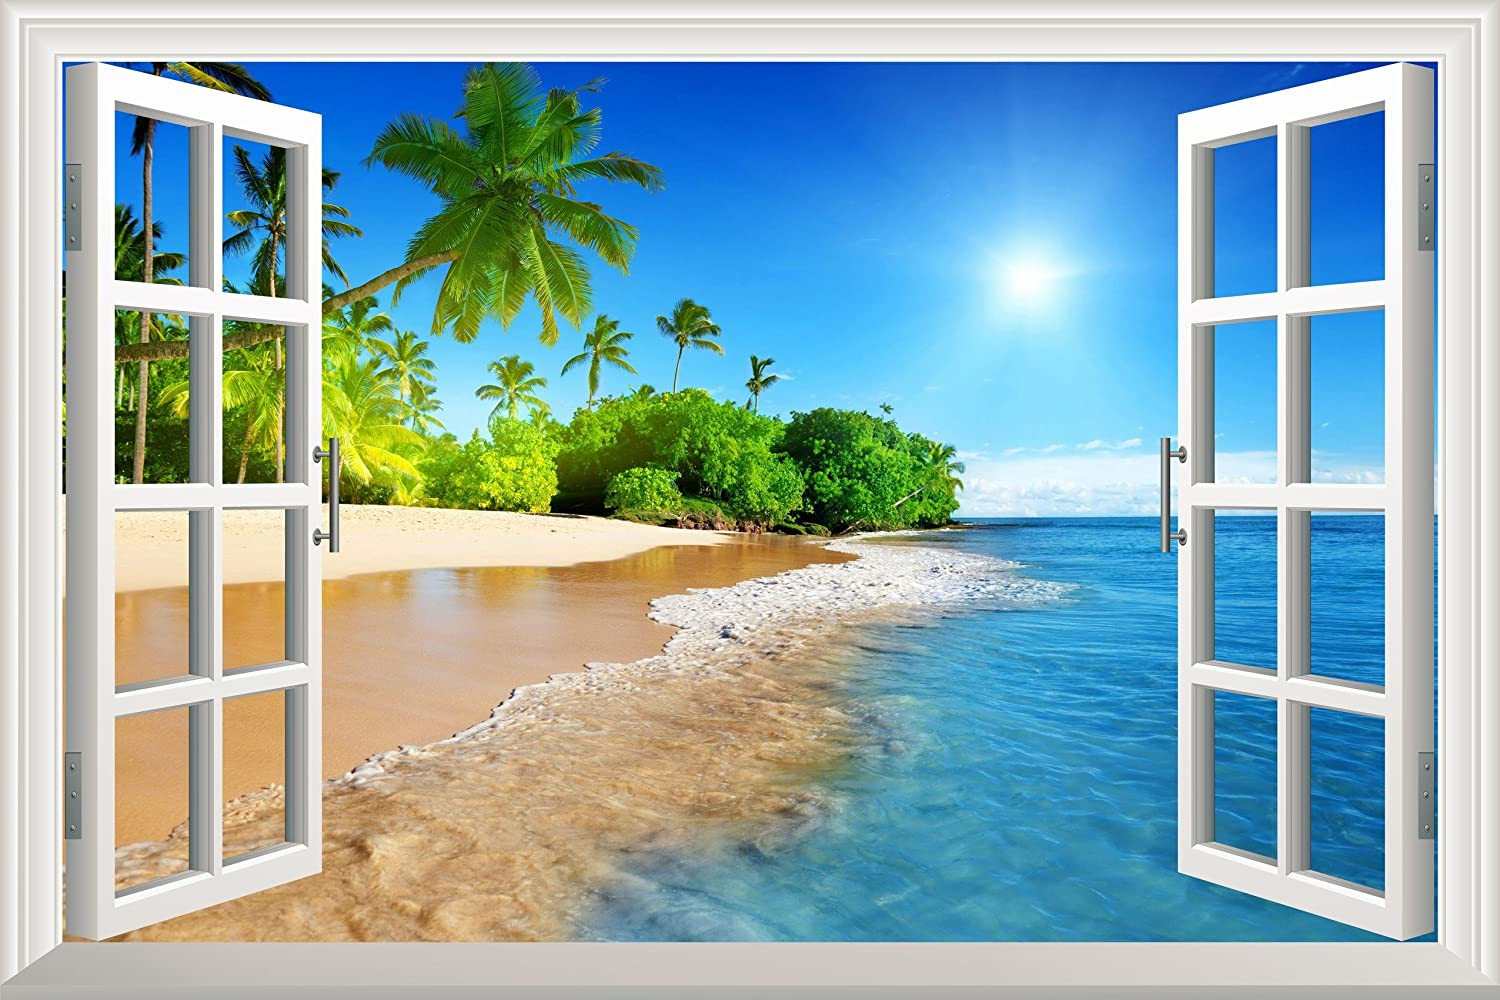 Open window beach - Wall26 White Beach With Blue Sea And Palm Tree Open Window Mural Wall Decal Sticker 36 X48